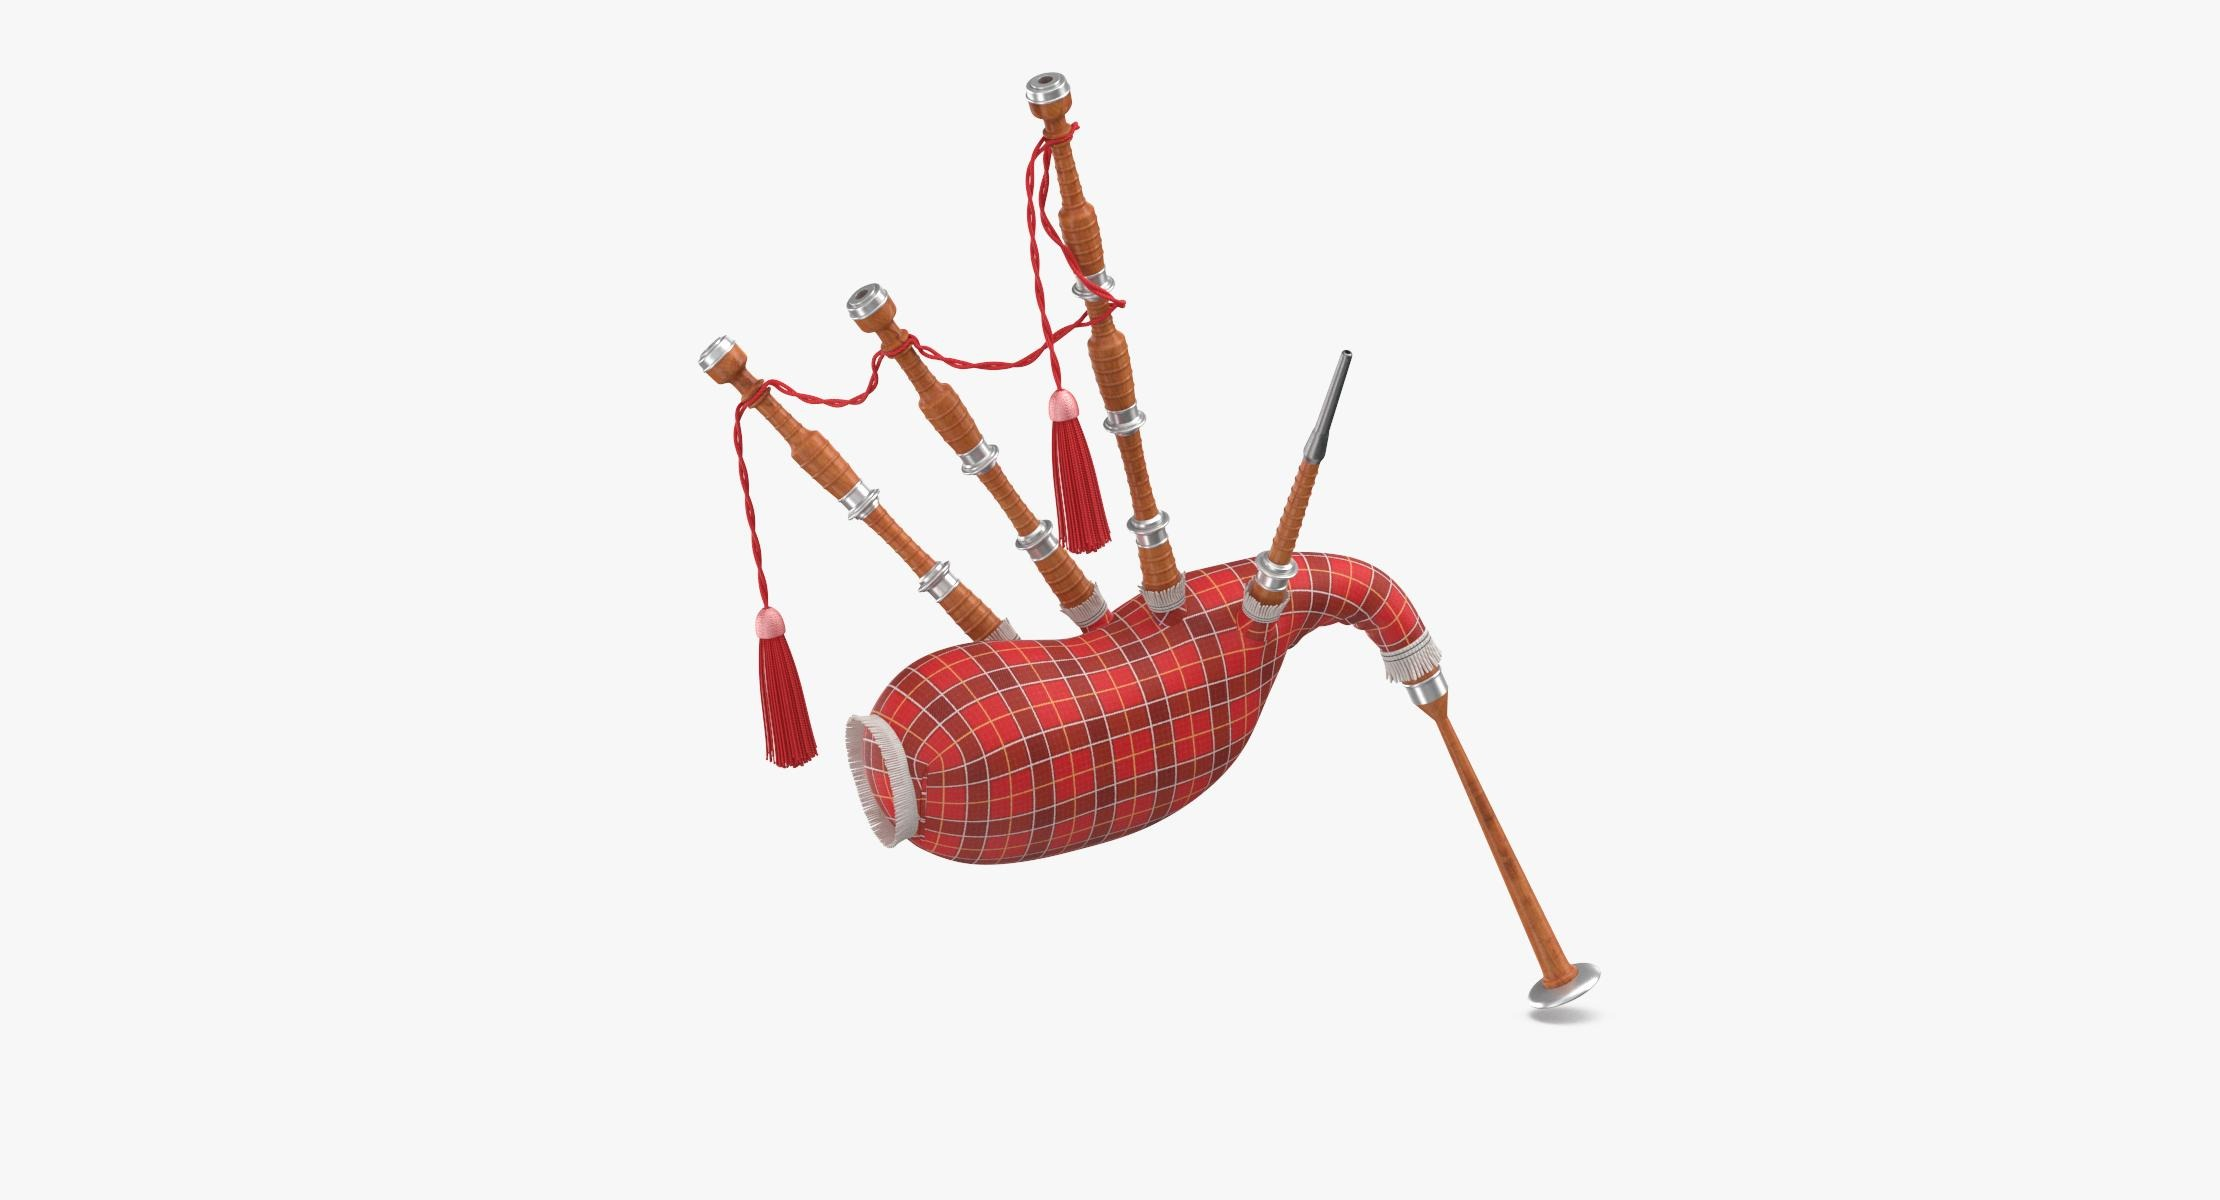 Bagpipe Traditional 01 - reel 1